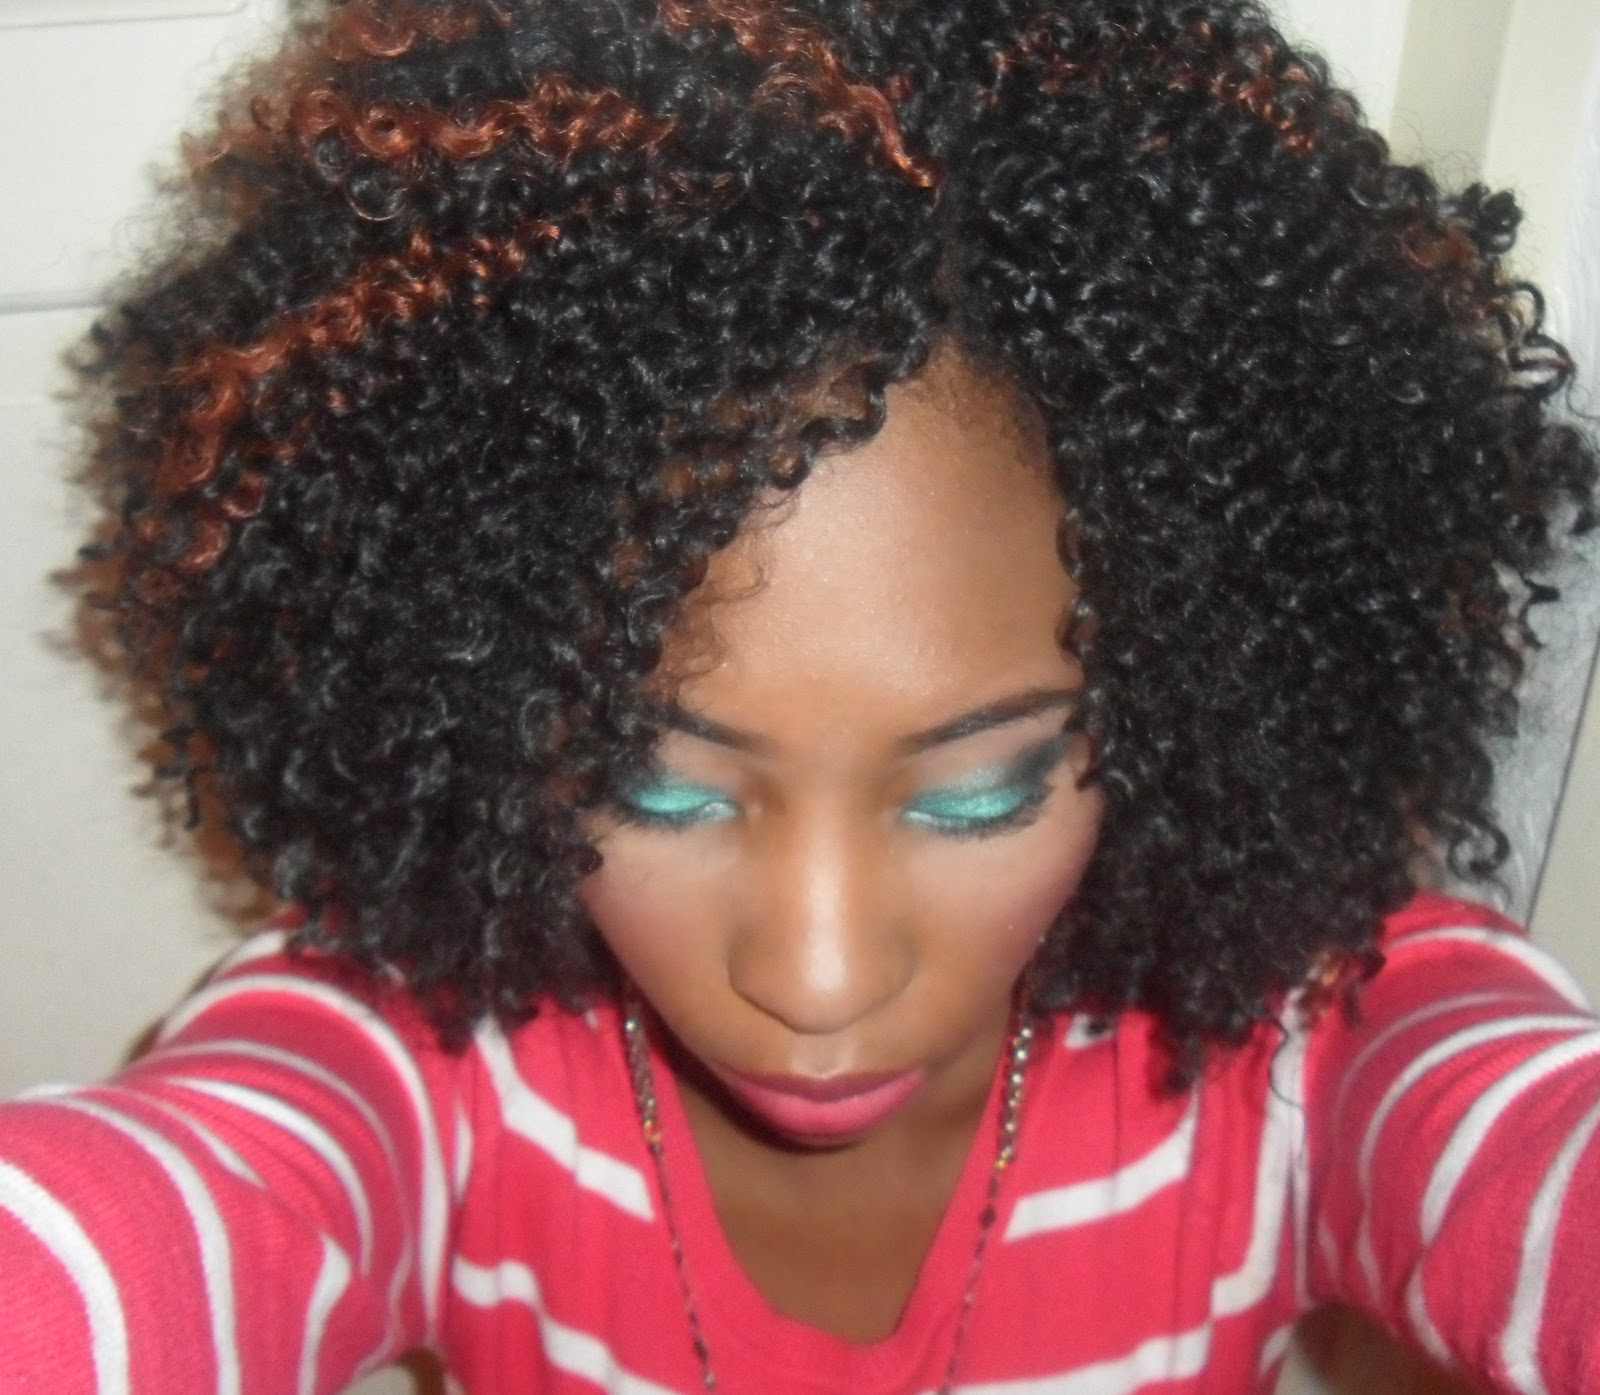 Crochet Hair You Can Curl : If you are interested in learning how to do crochet braids, here is a ...